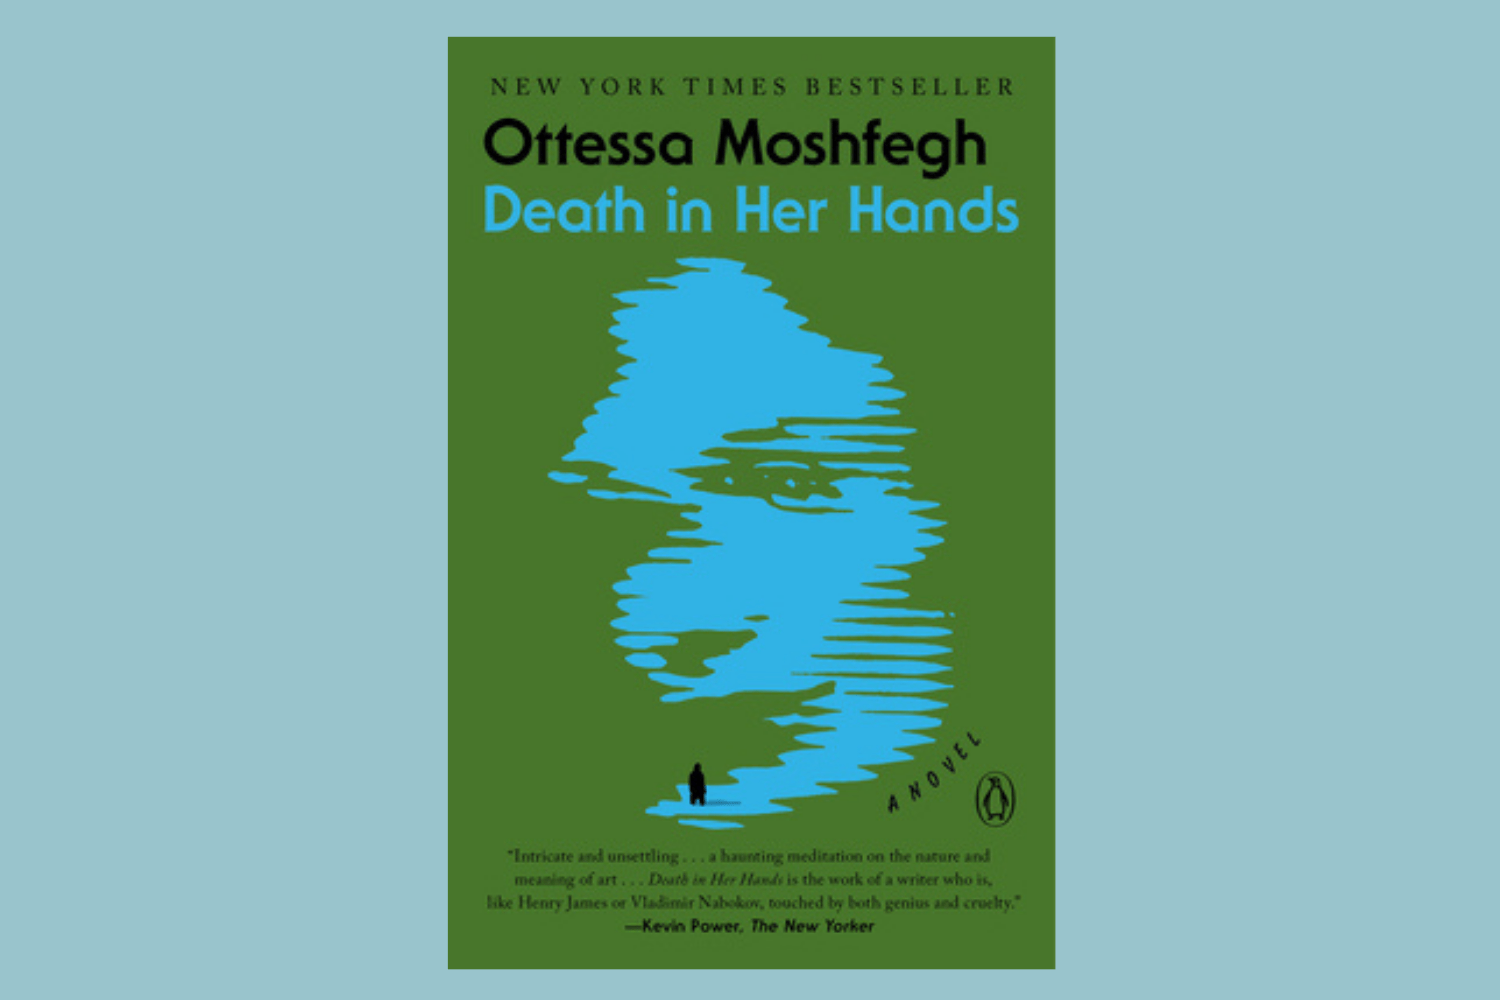 Death in Her Hands by Ottessa Moshfegh book review